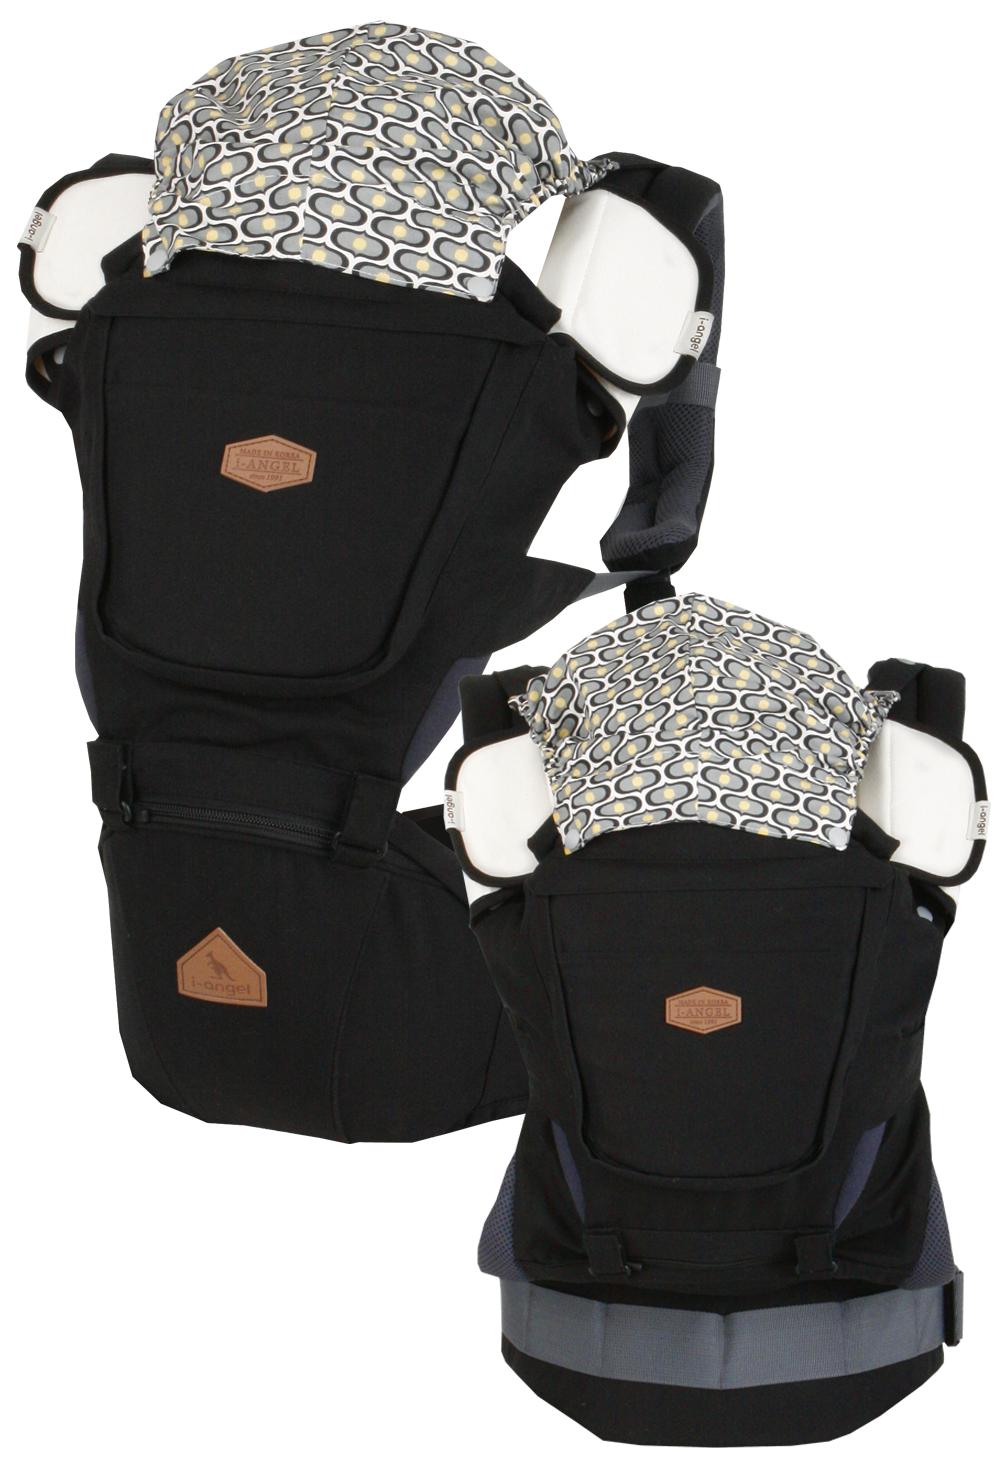 I-ANGEL RAINBOW INTERCHANGEABLE BABY CARRIER+HIPSEAT CARRIER (BLACK)